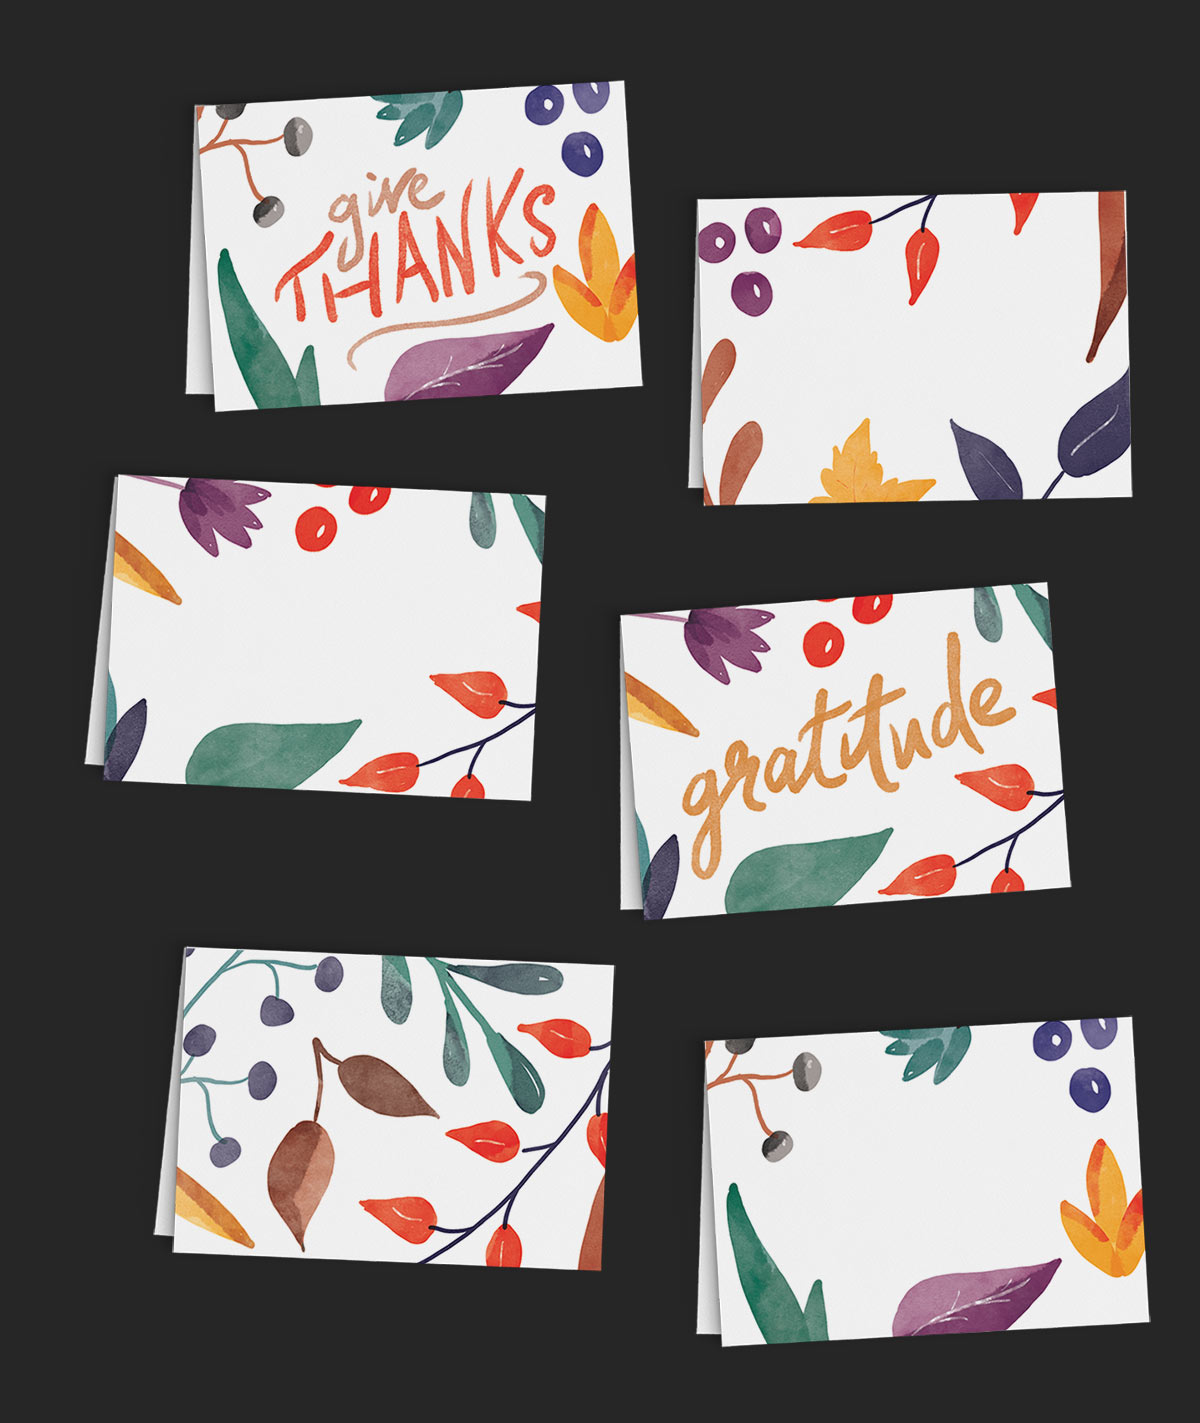 Thanksgiving Printable - Tiny Folded Cards with colorful Autumn foliage. By Colleen Michele